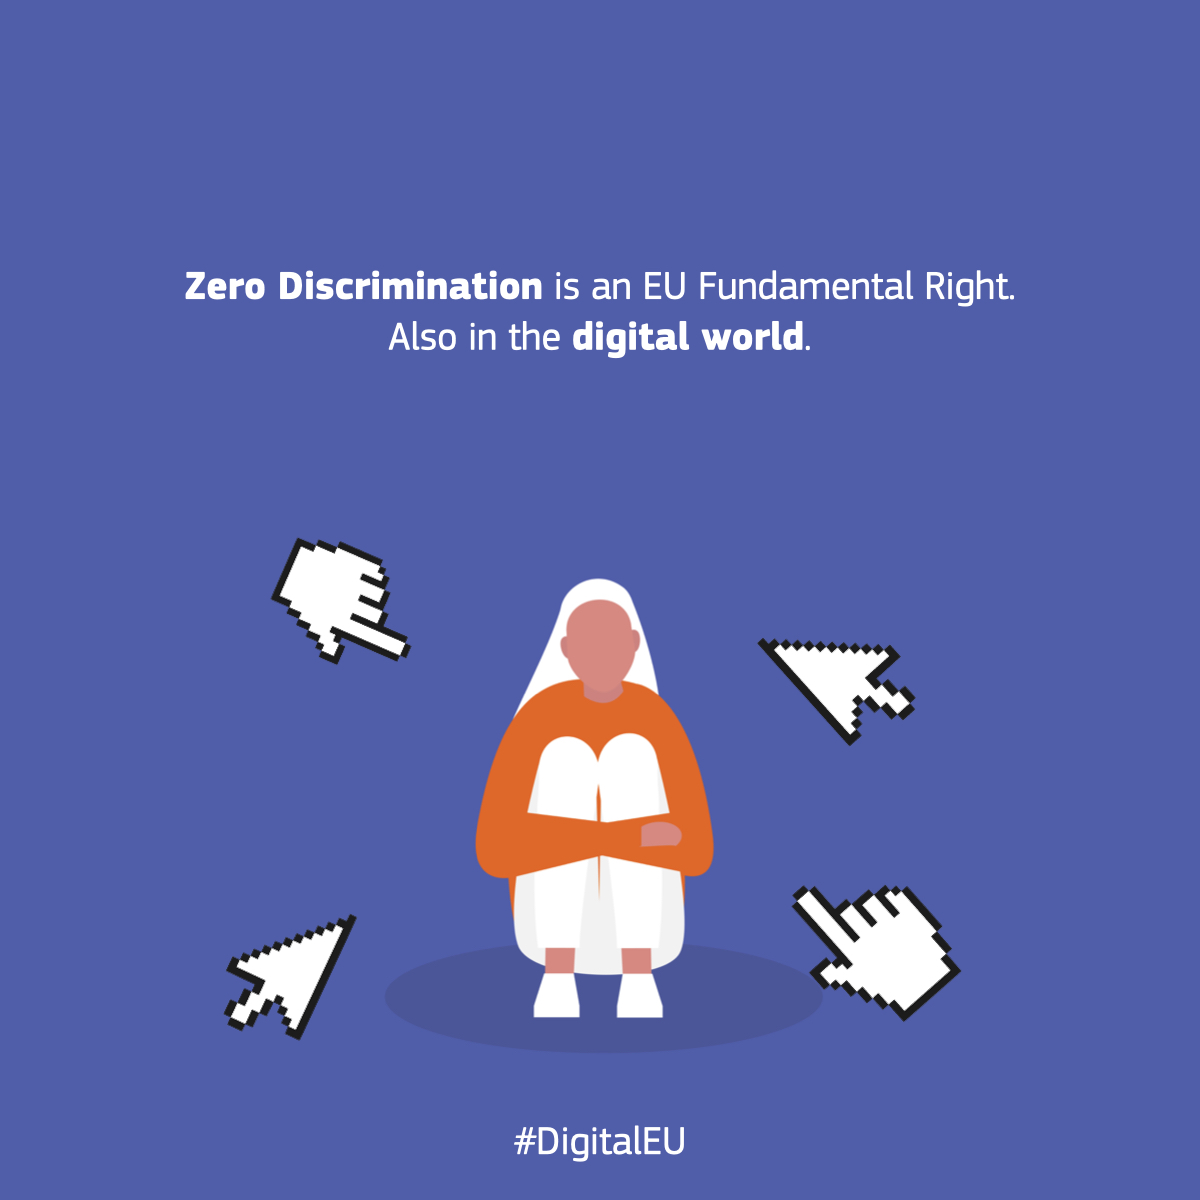 🌐 Inclusive, open, a place of opportunities, a place where everyone can share & develop new ideas 🌐. Thats how we want the online world to be. A place with Zero Discrimination. #ZeroDiscriminationDay #WomenInTech #UnionOfEquality #DigitalEU